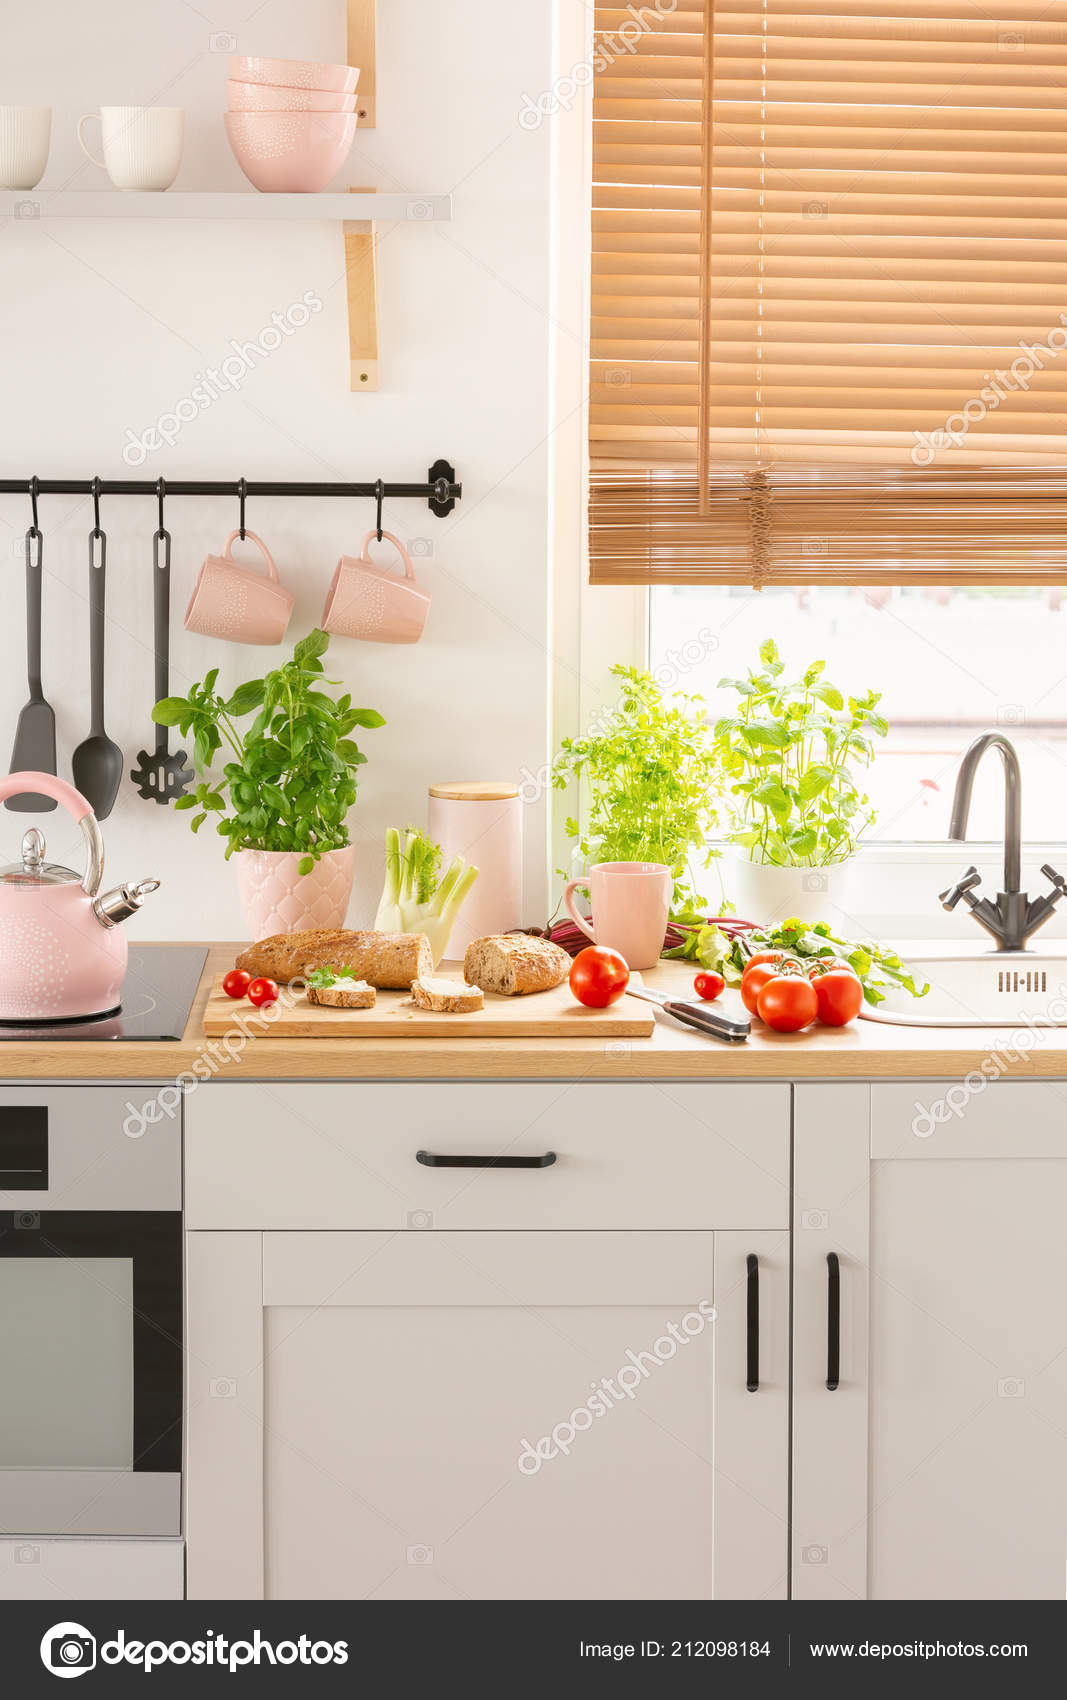 Food Pink Accessories Countertop Bright Kitchen Interior Blinds Real